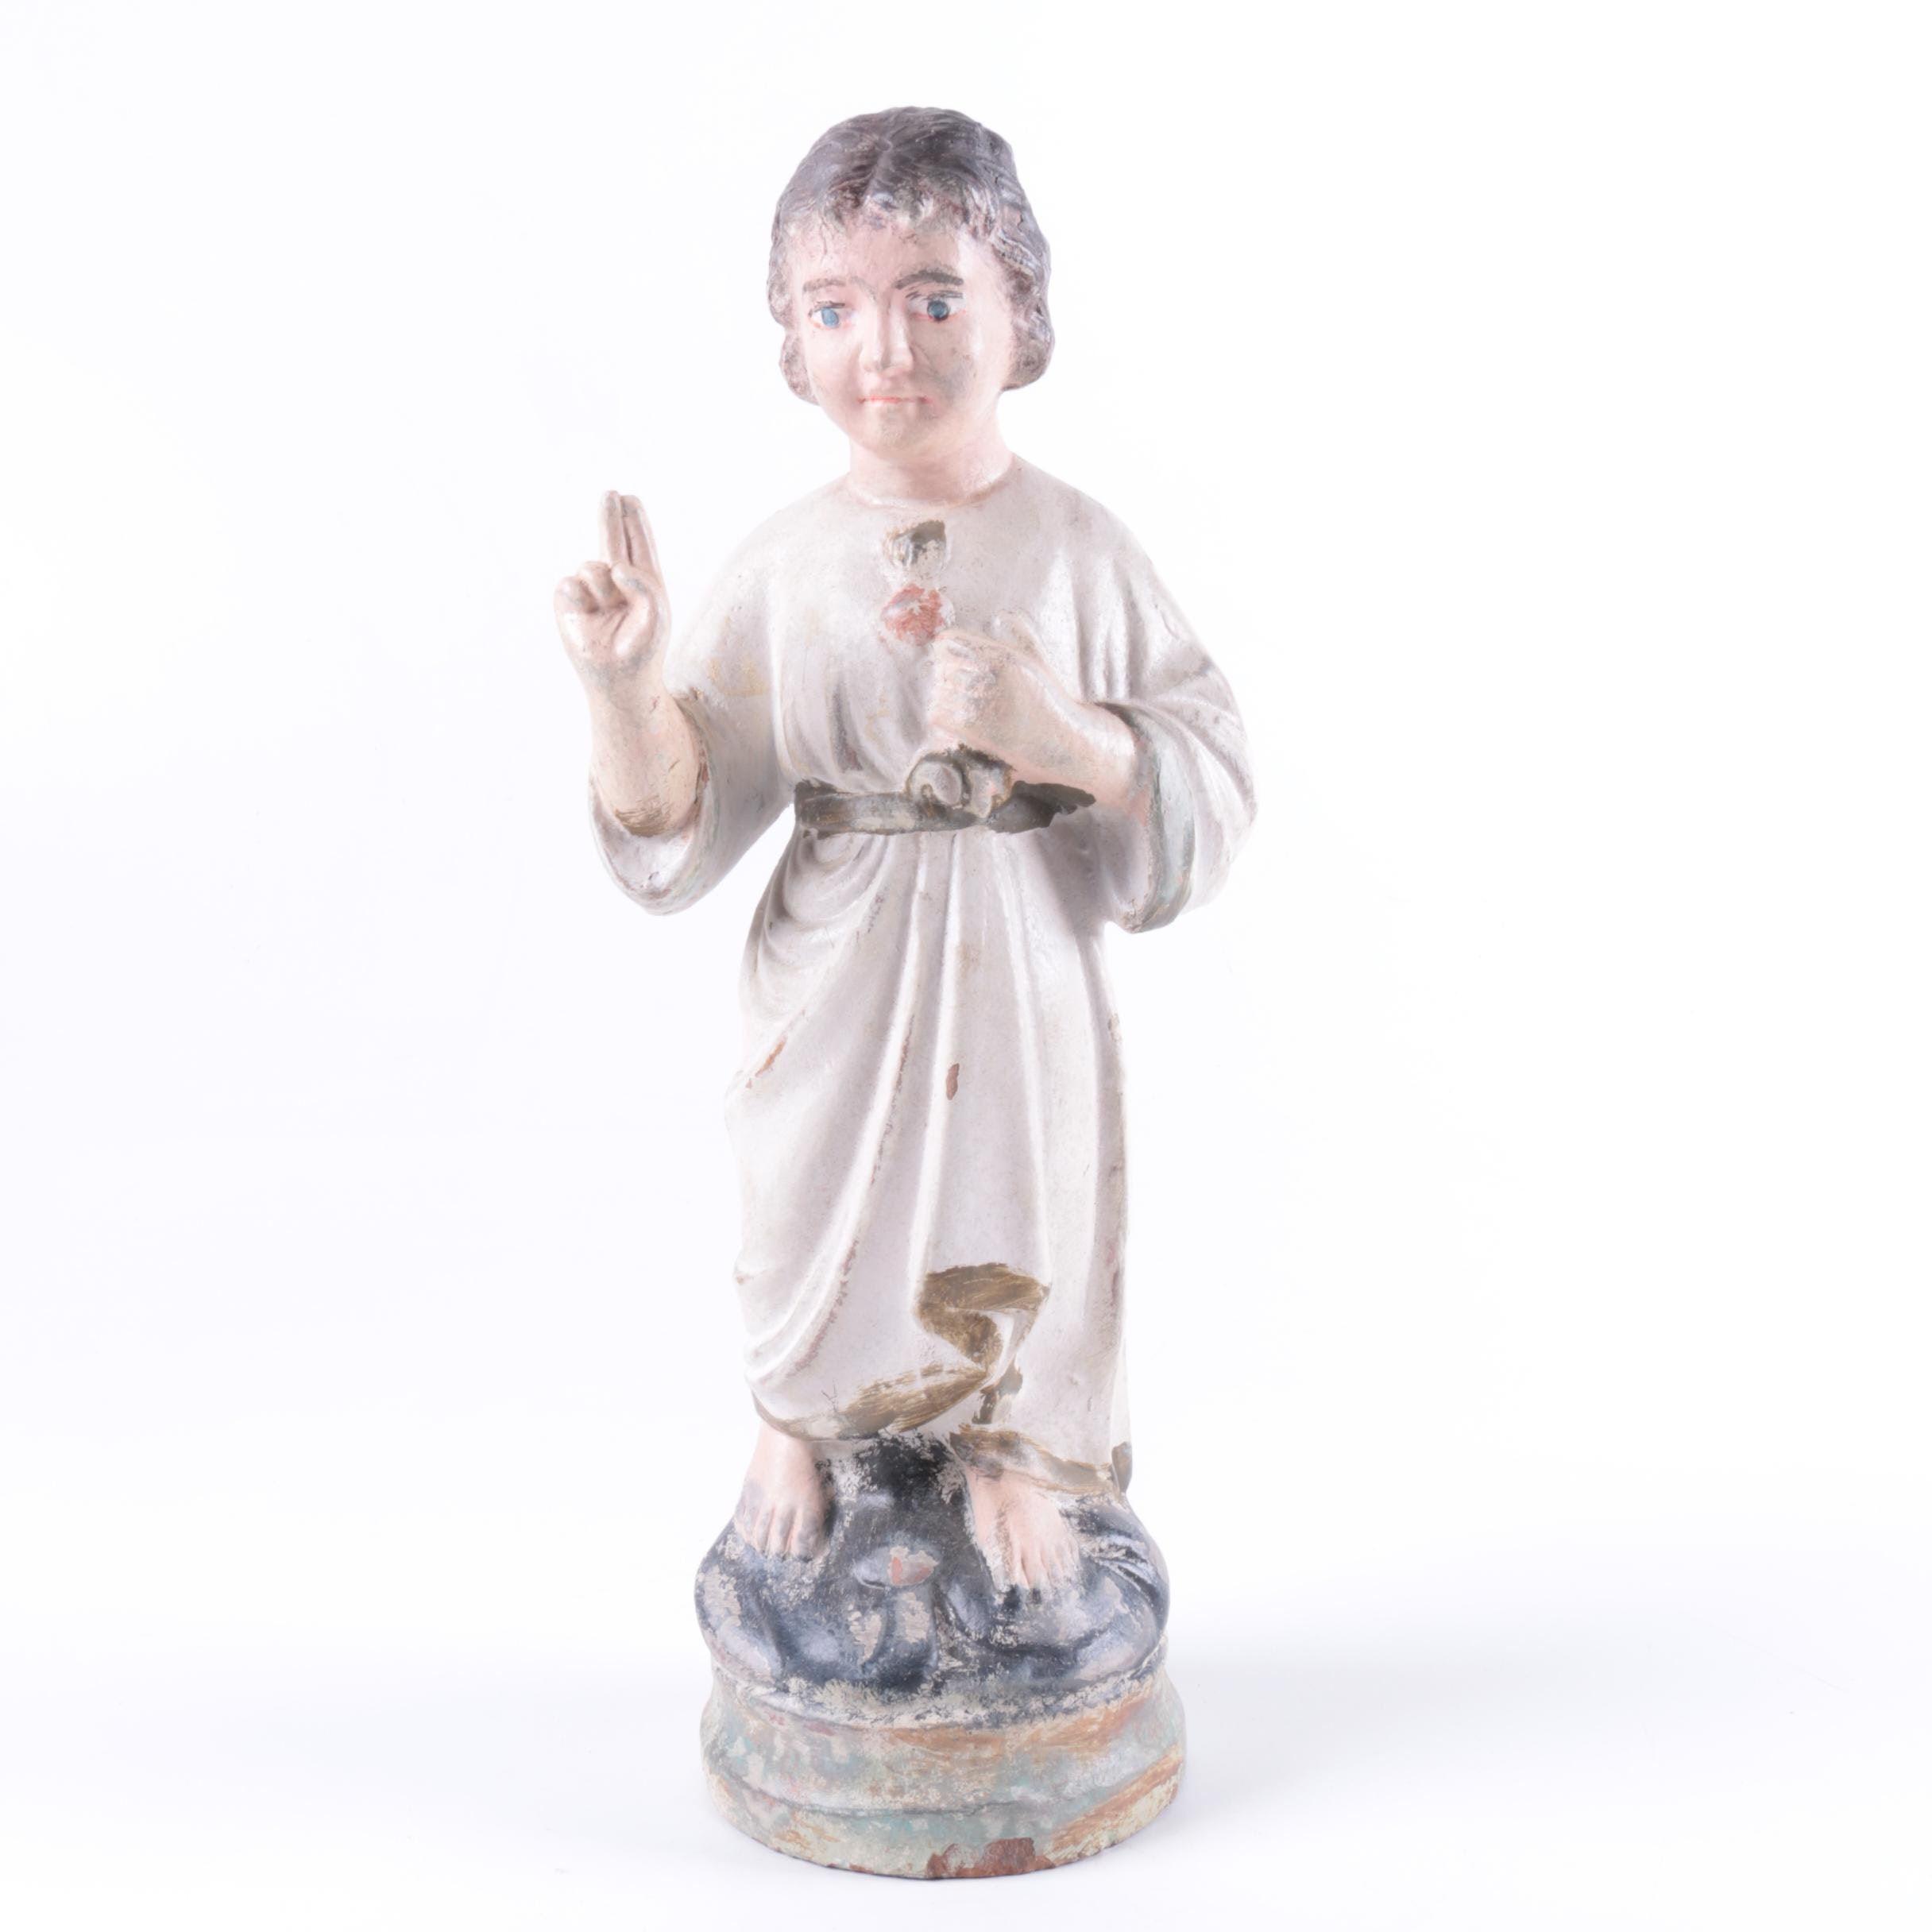 Vintage Painted Earthenware Jesus Youth Figurine